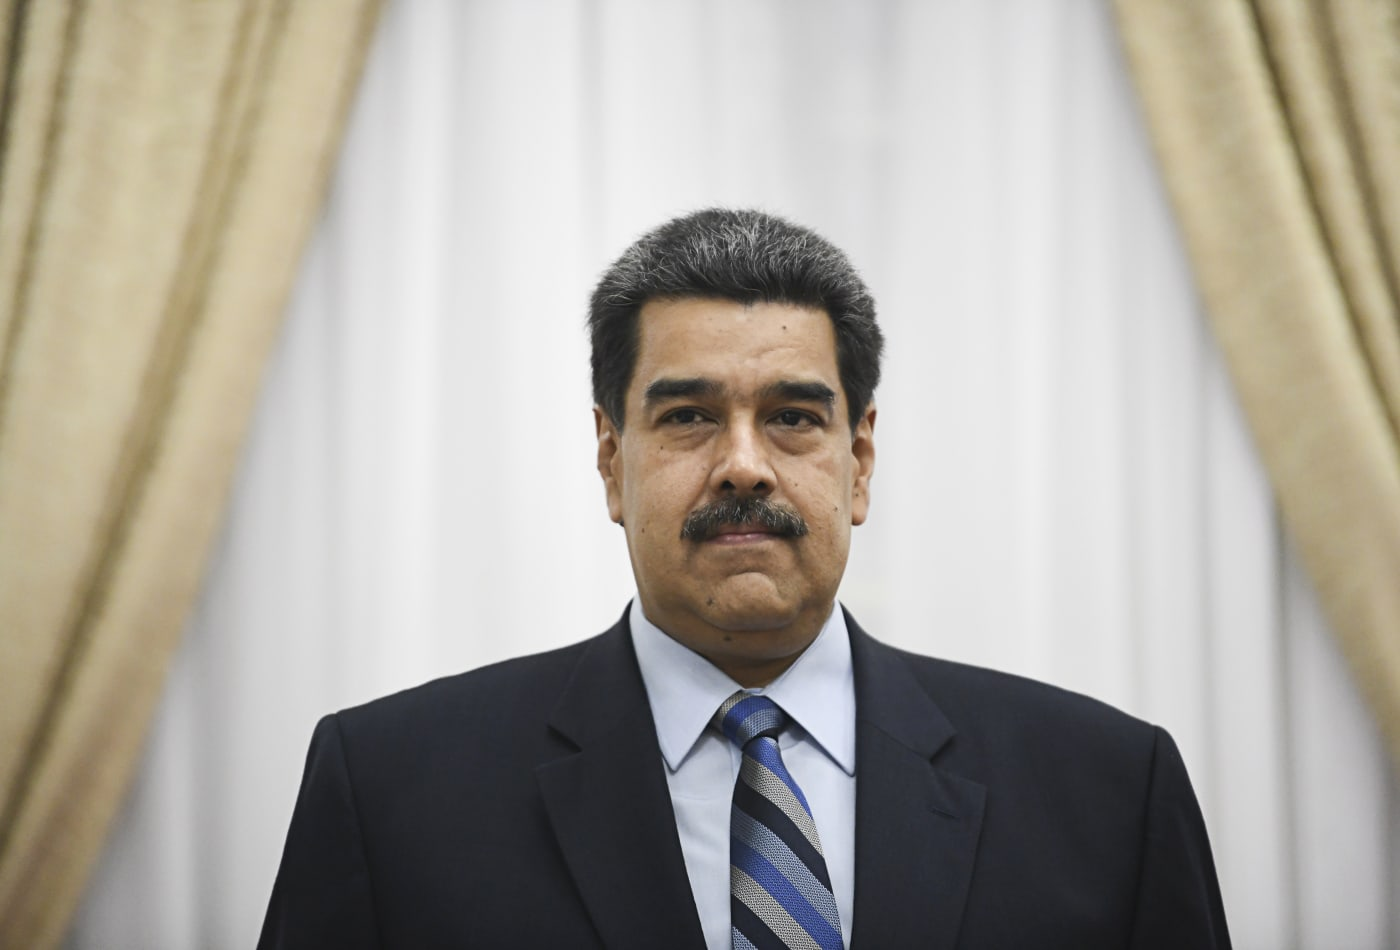 Treasury slaps fresh sanctions on entities supporting Venezuela's oil sector and Maduro regime